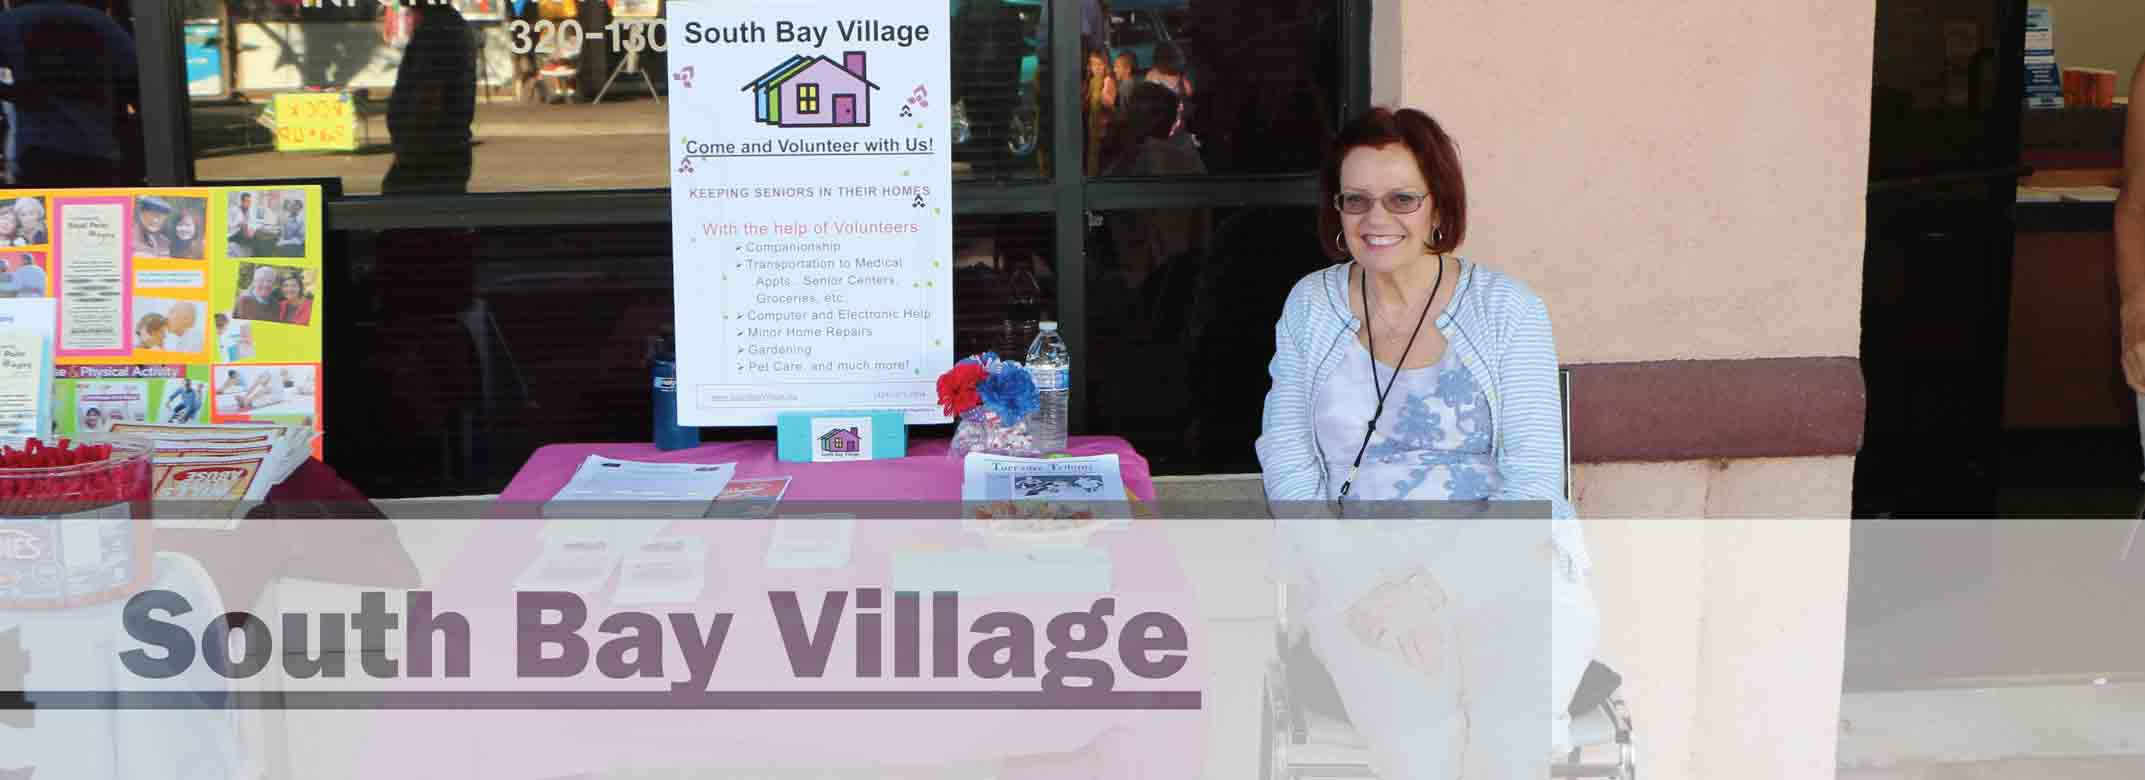 southbayvillagemainimage